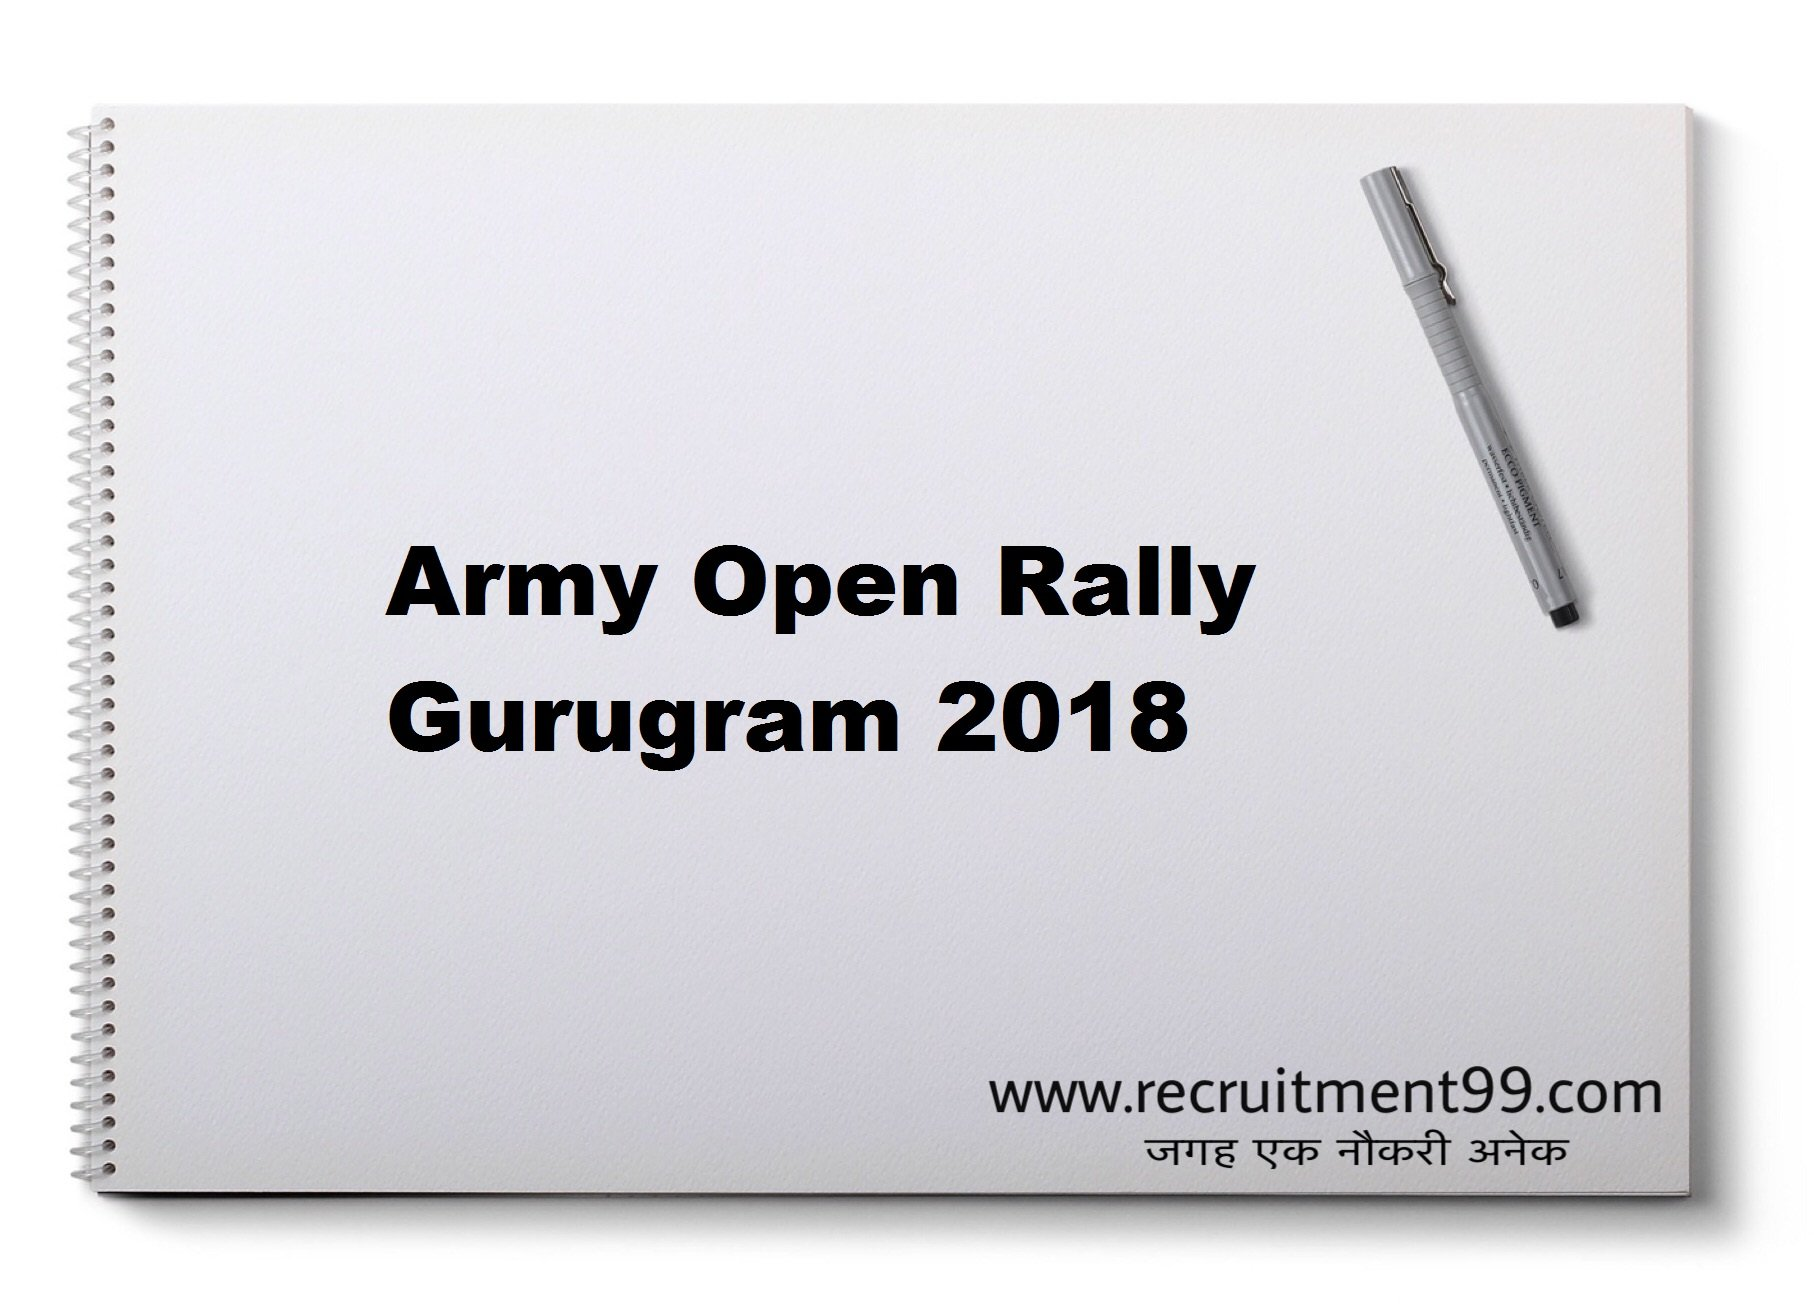 Army Open Rally Gurugram Recruitment Admit Card Result 2018